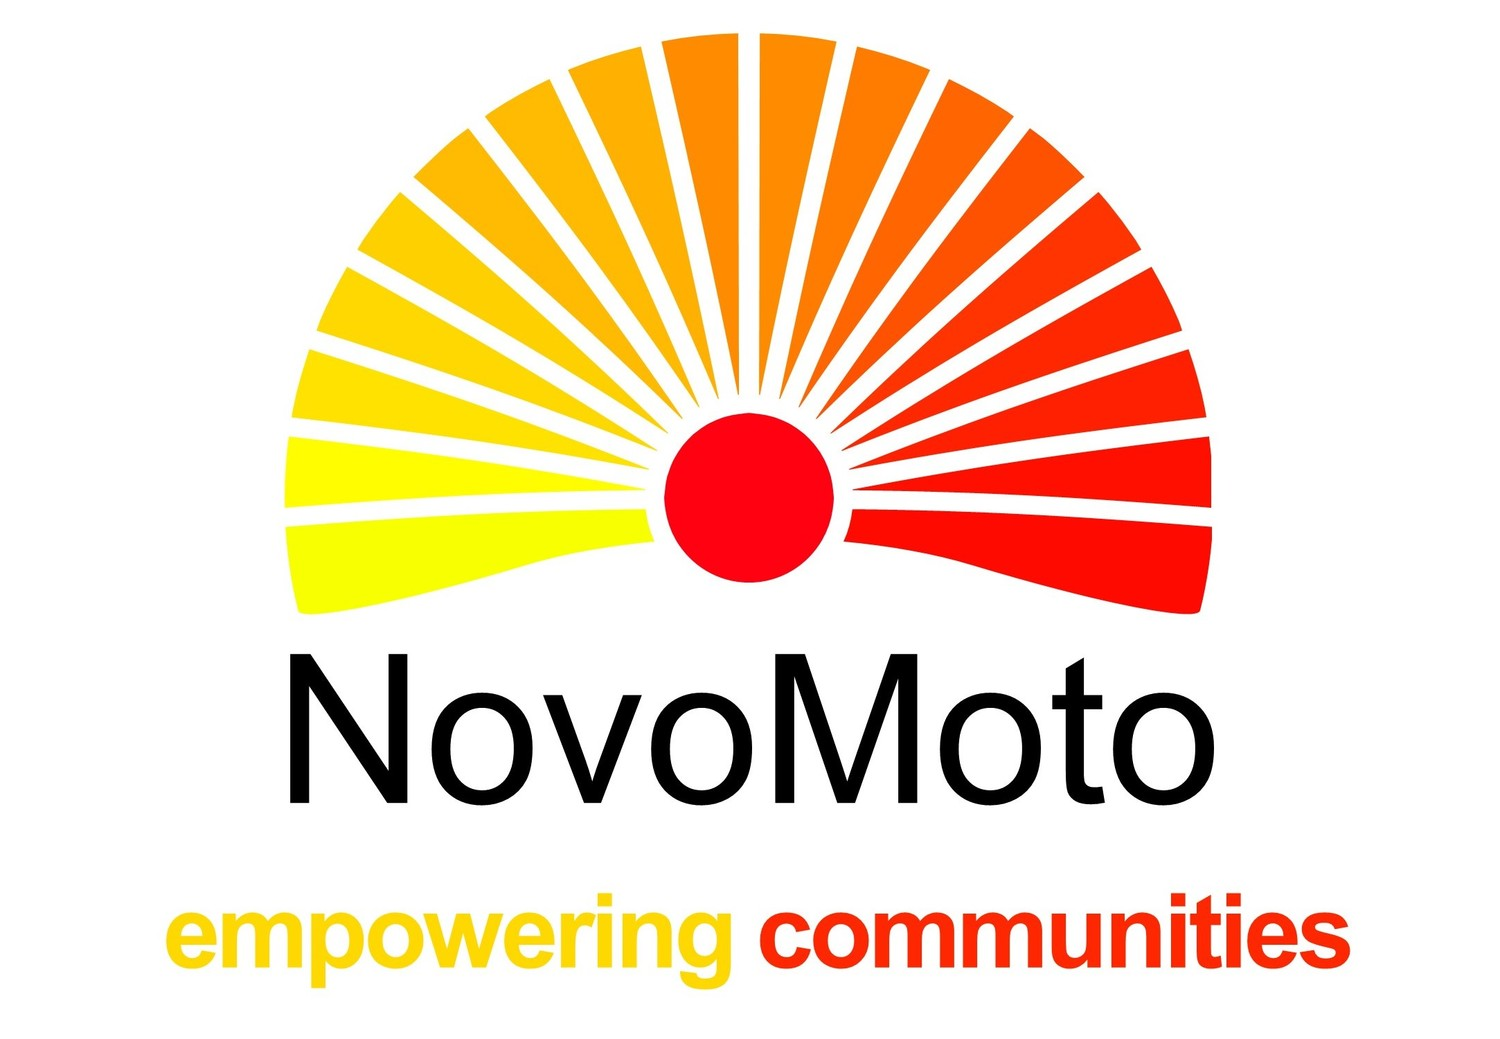 NovoMoto: Providing clean, renewable, and sustainable electricity to communities in the Democratic Republic of Congo.